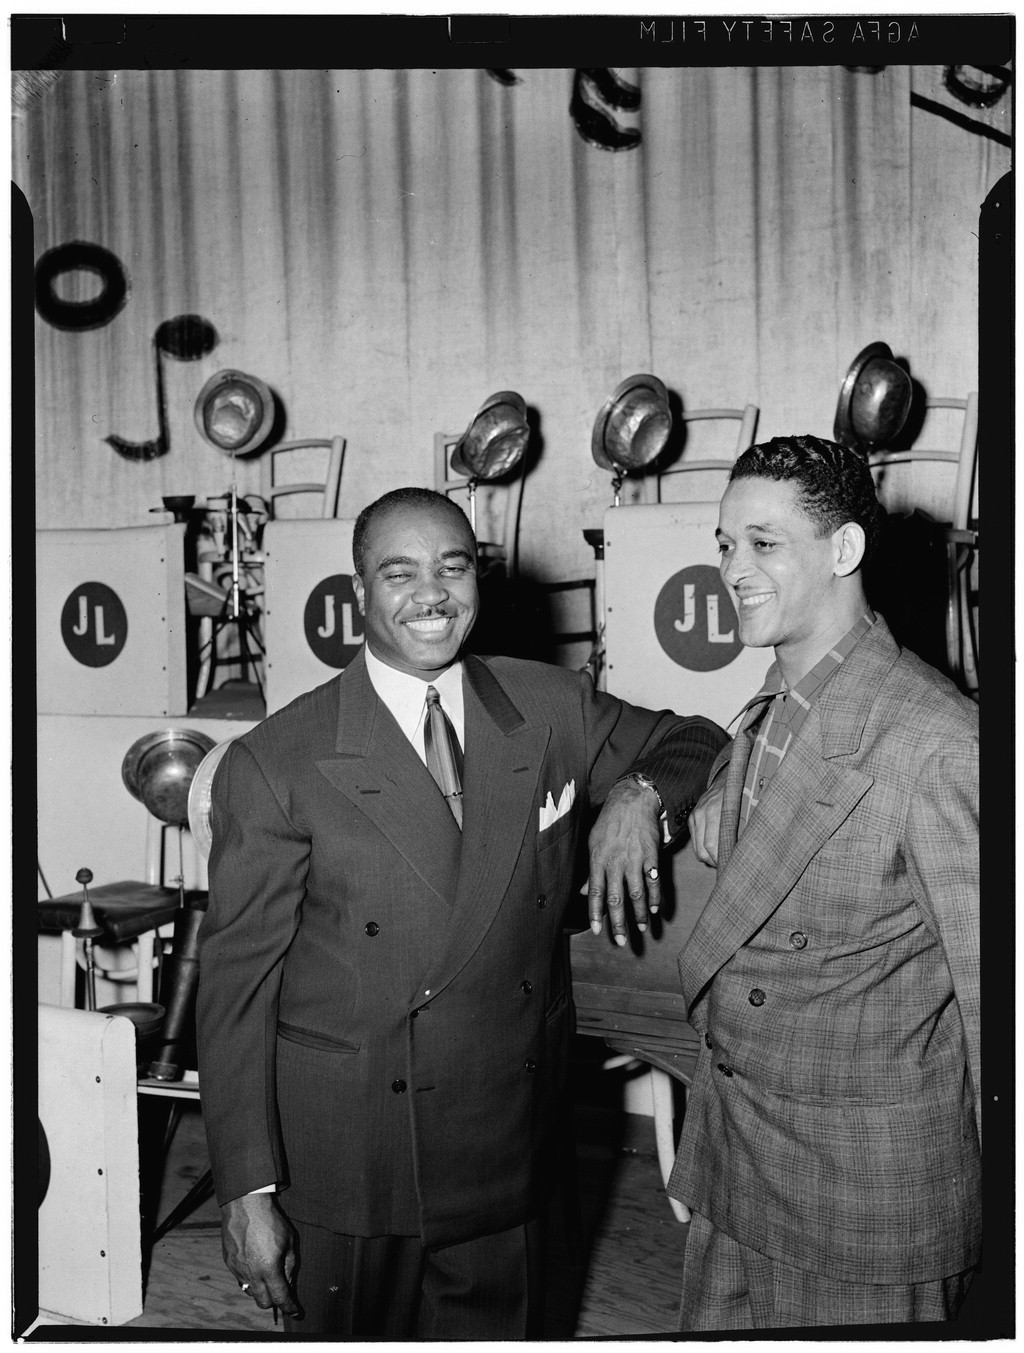 Trummy Young (right) and Jimmie Lunceford, early 1940s. Photograph by William P. Gottlieb.